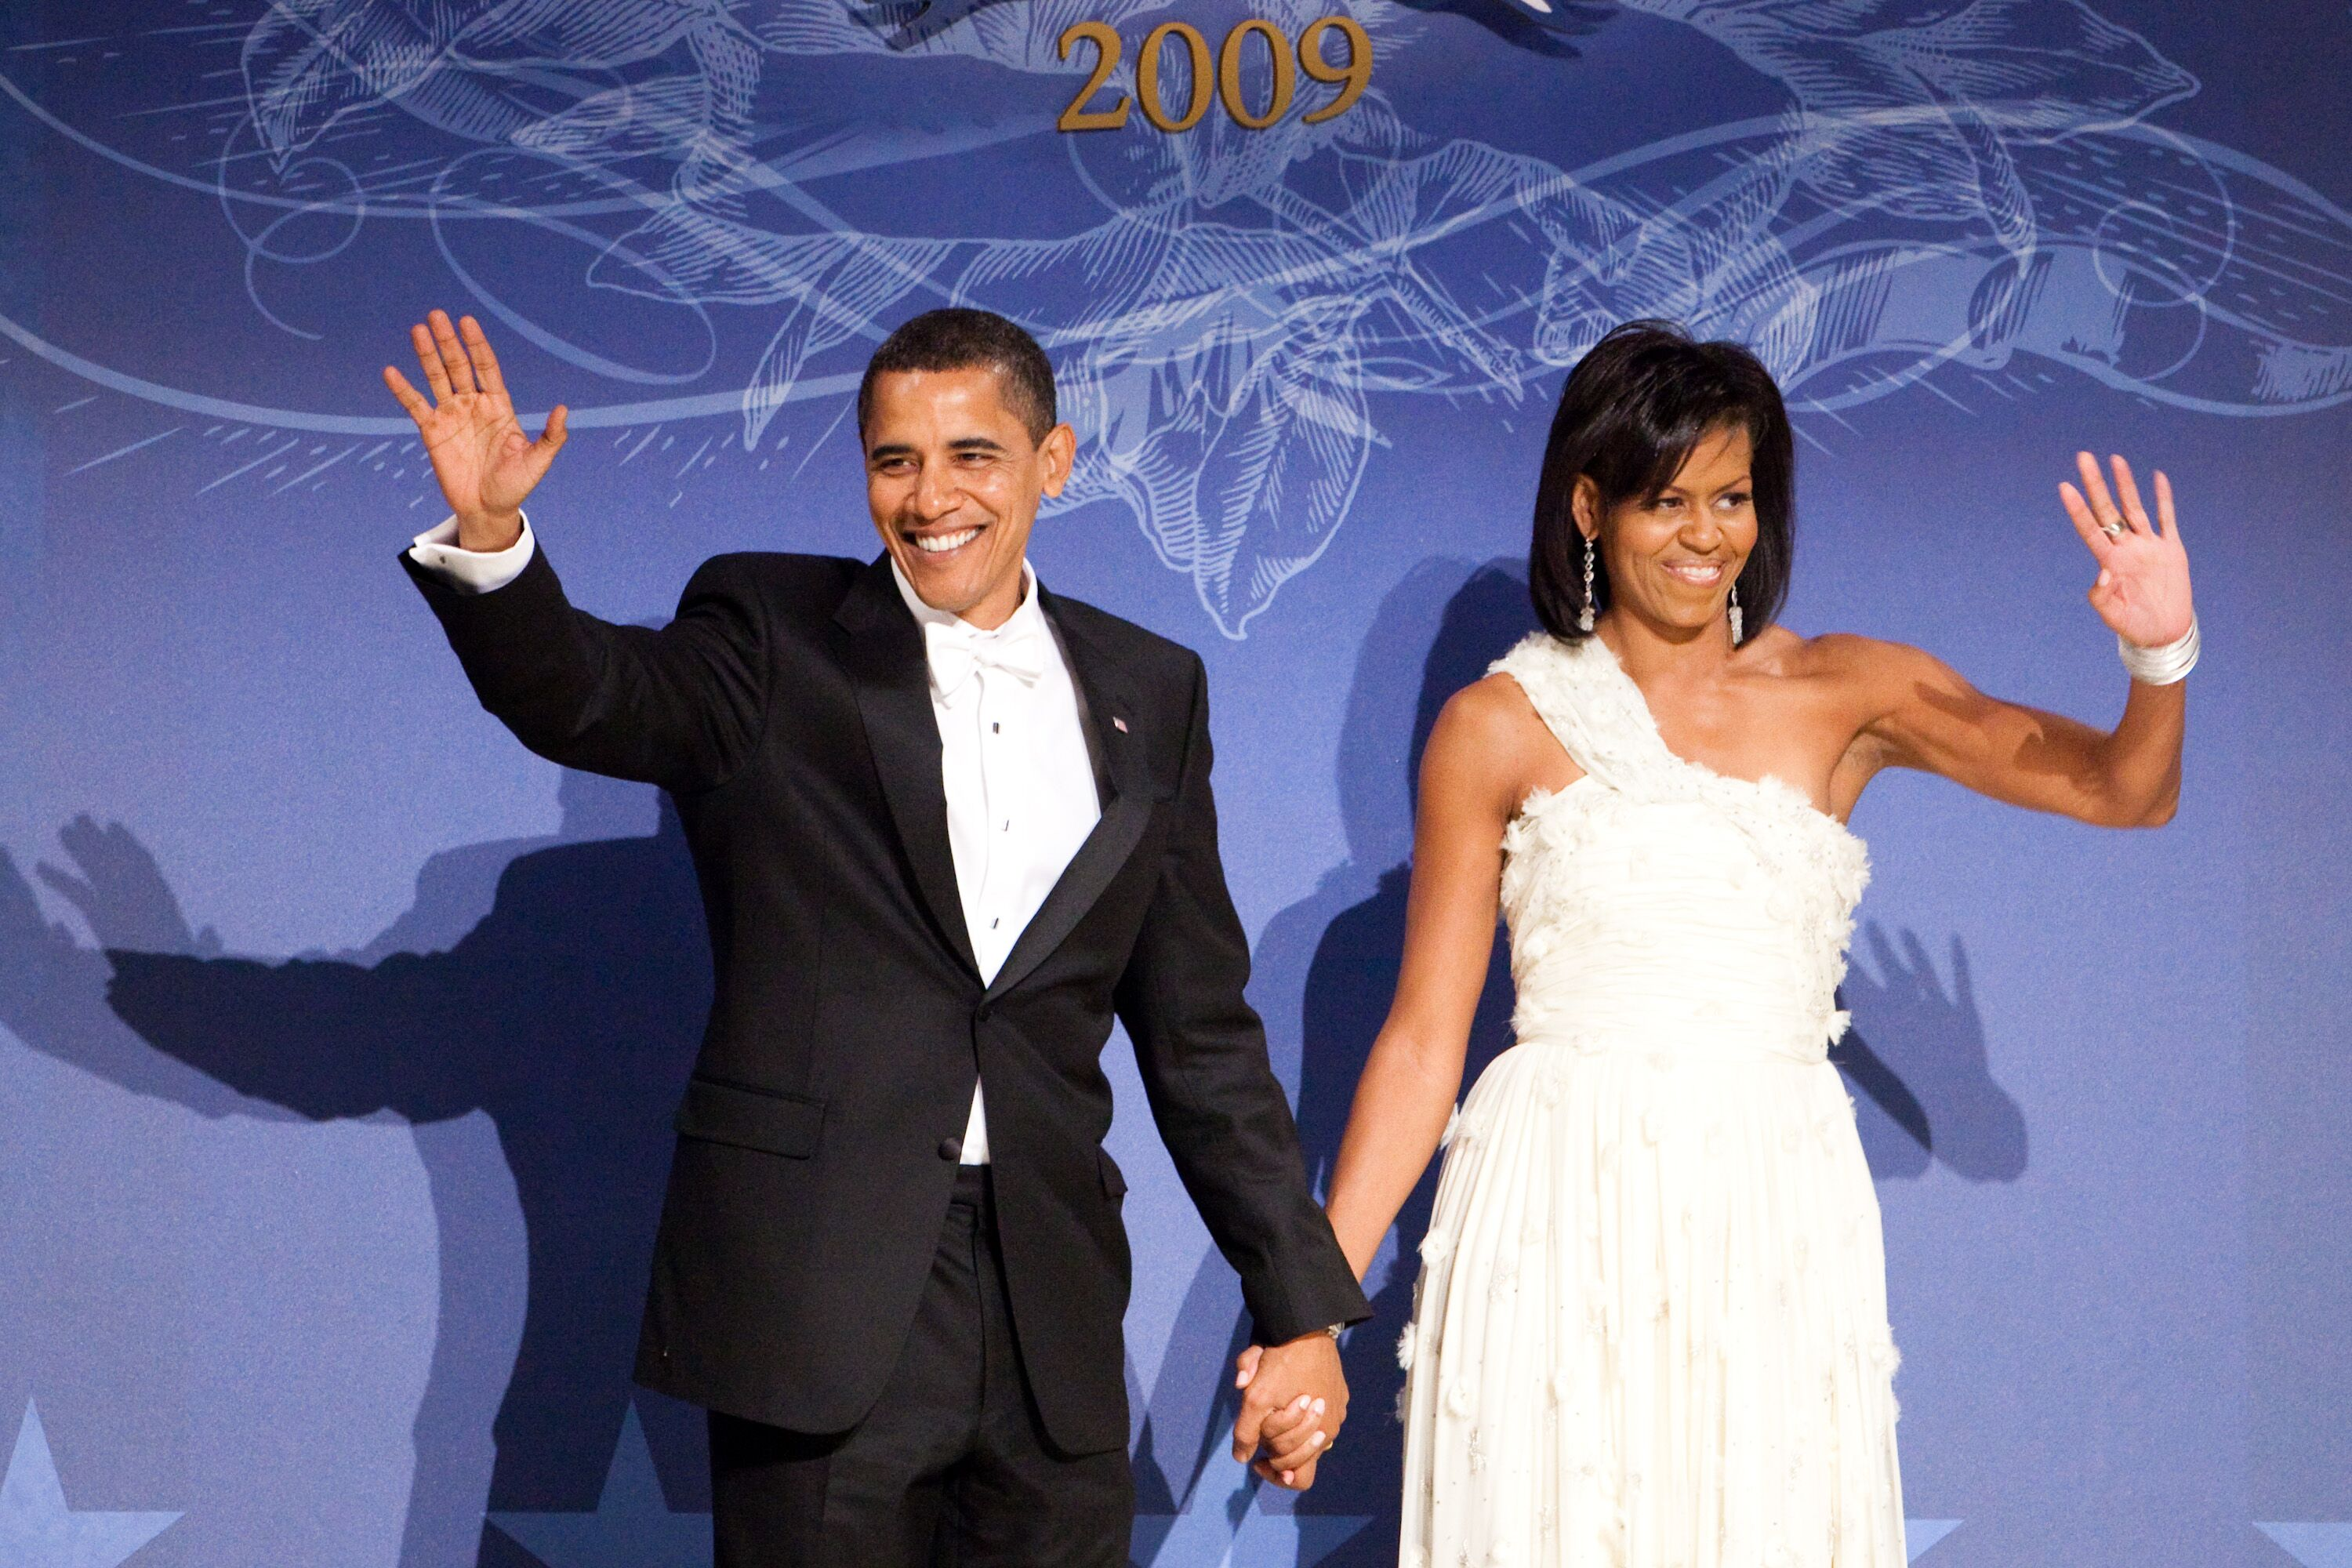 Barack and Michelle Obama at the 2009 Inaugural Ball/ Source: Getty Images